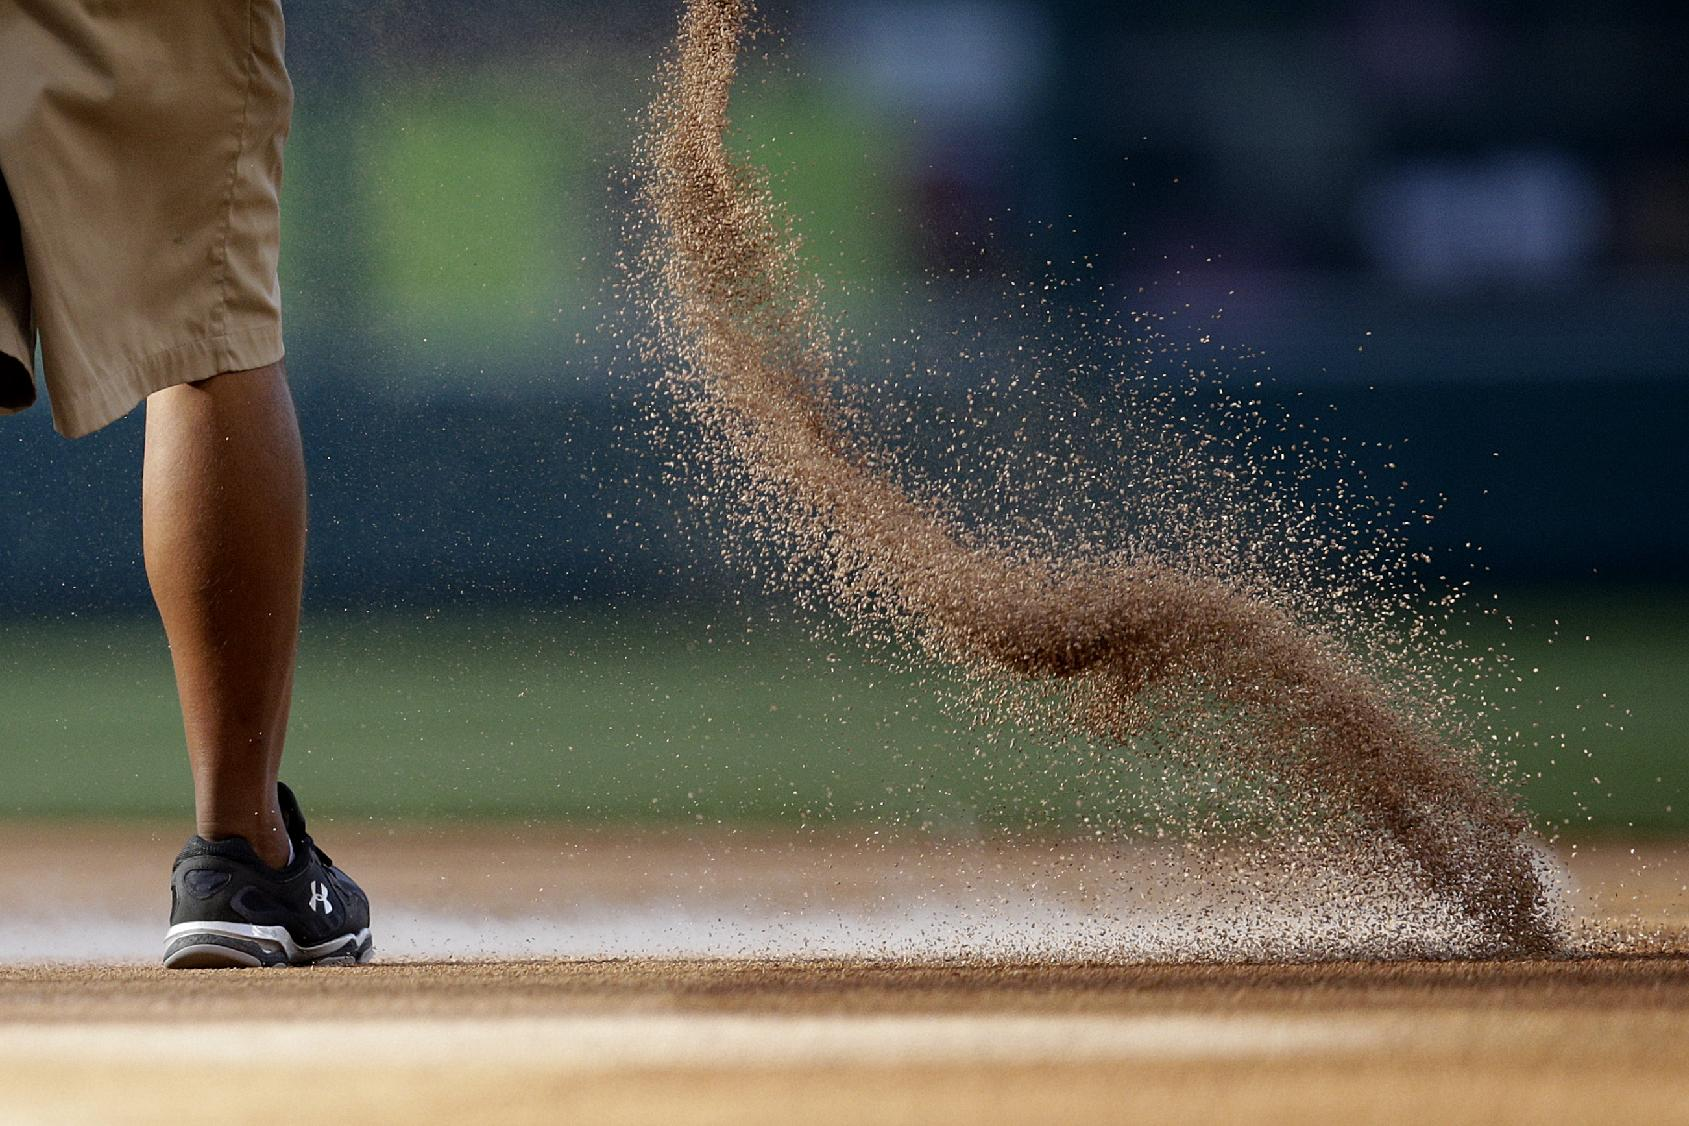 A grounds crew worker pours dirt before a baseball game between the Los Angeles Angels and the New York Mets on Saturday, April 12, 2014, in Anaheim, Calif